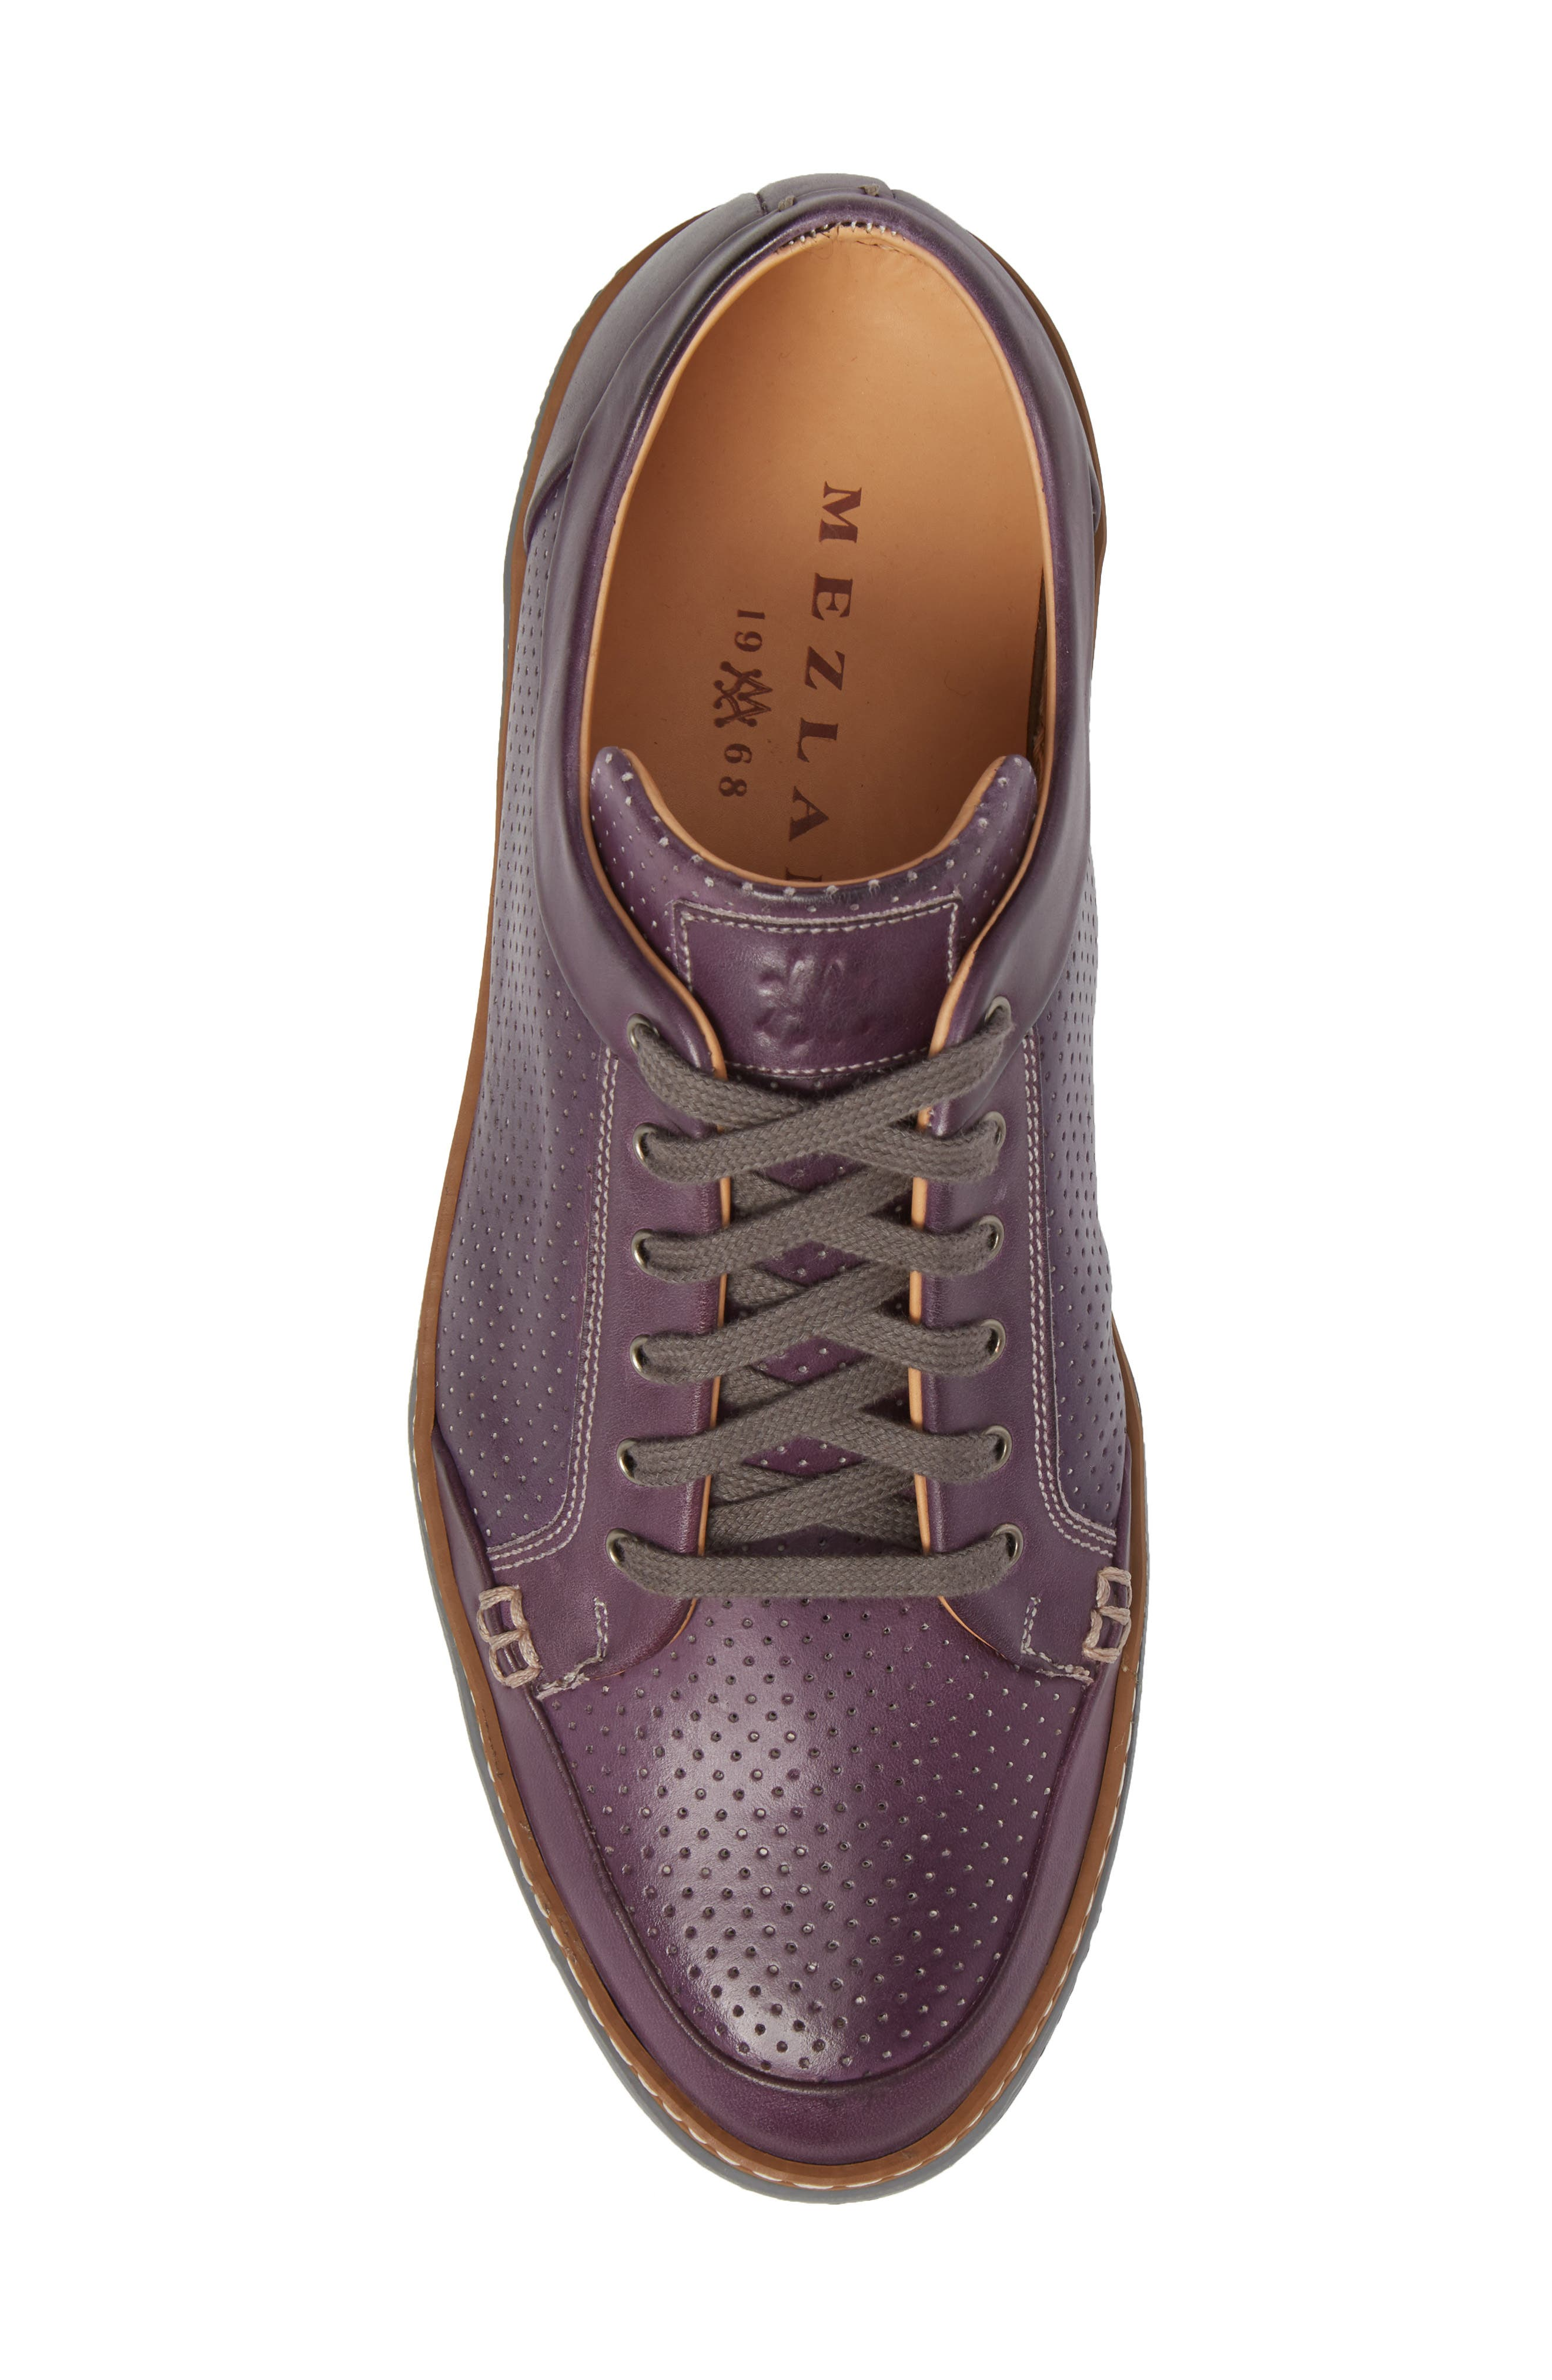 Ceres Perforated Low Top Sneaker,                             Alternate thumbnail 5, color,                             PURPLE LEATHER